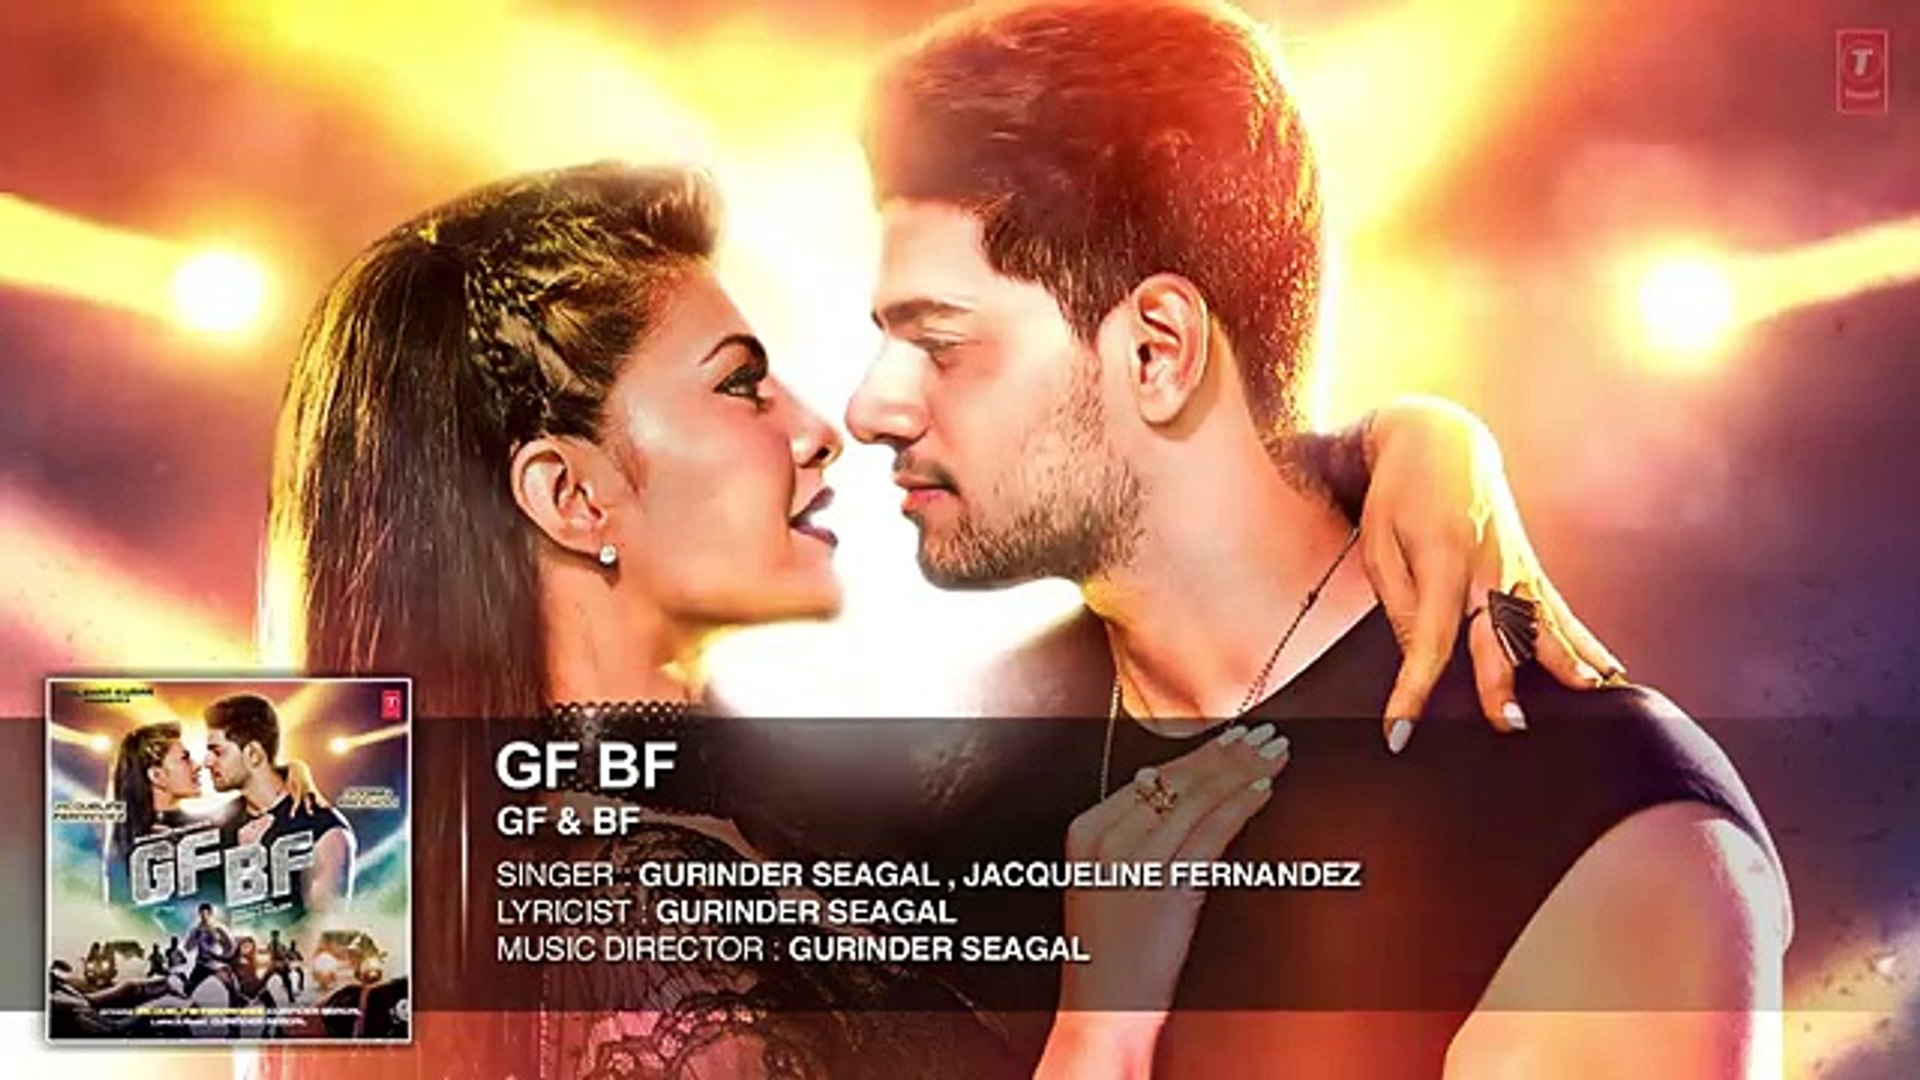 Gf and bf movie